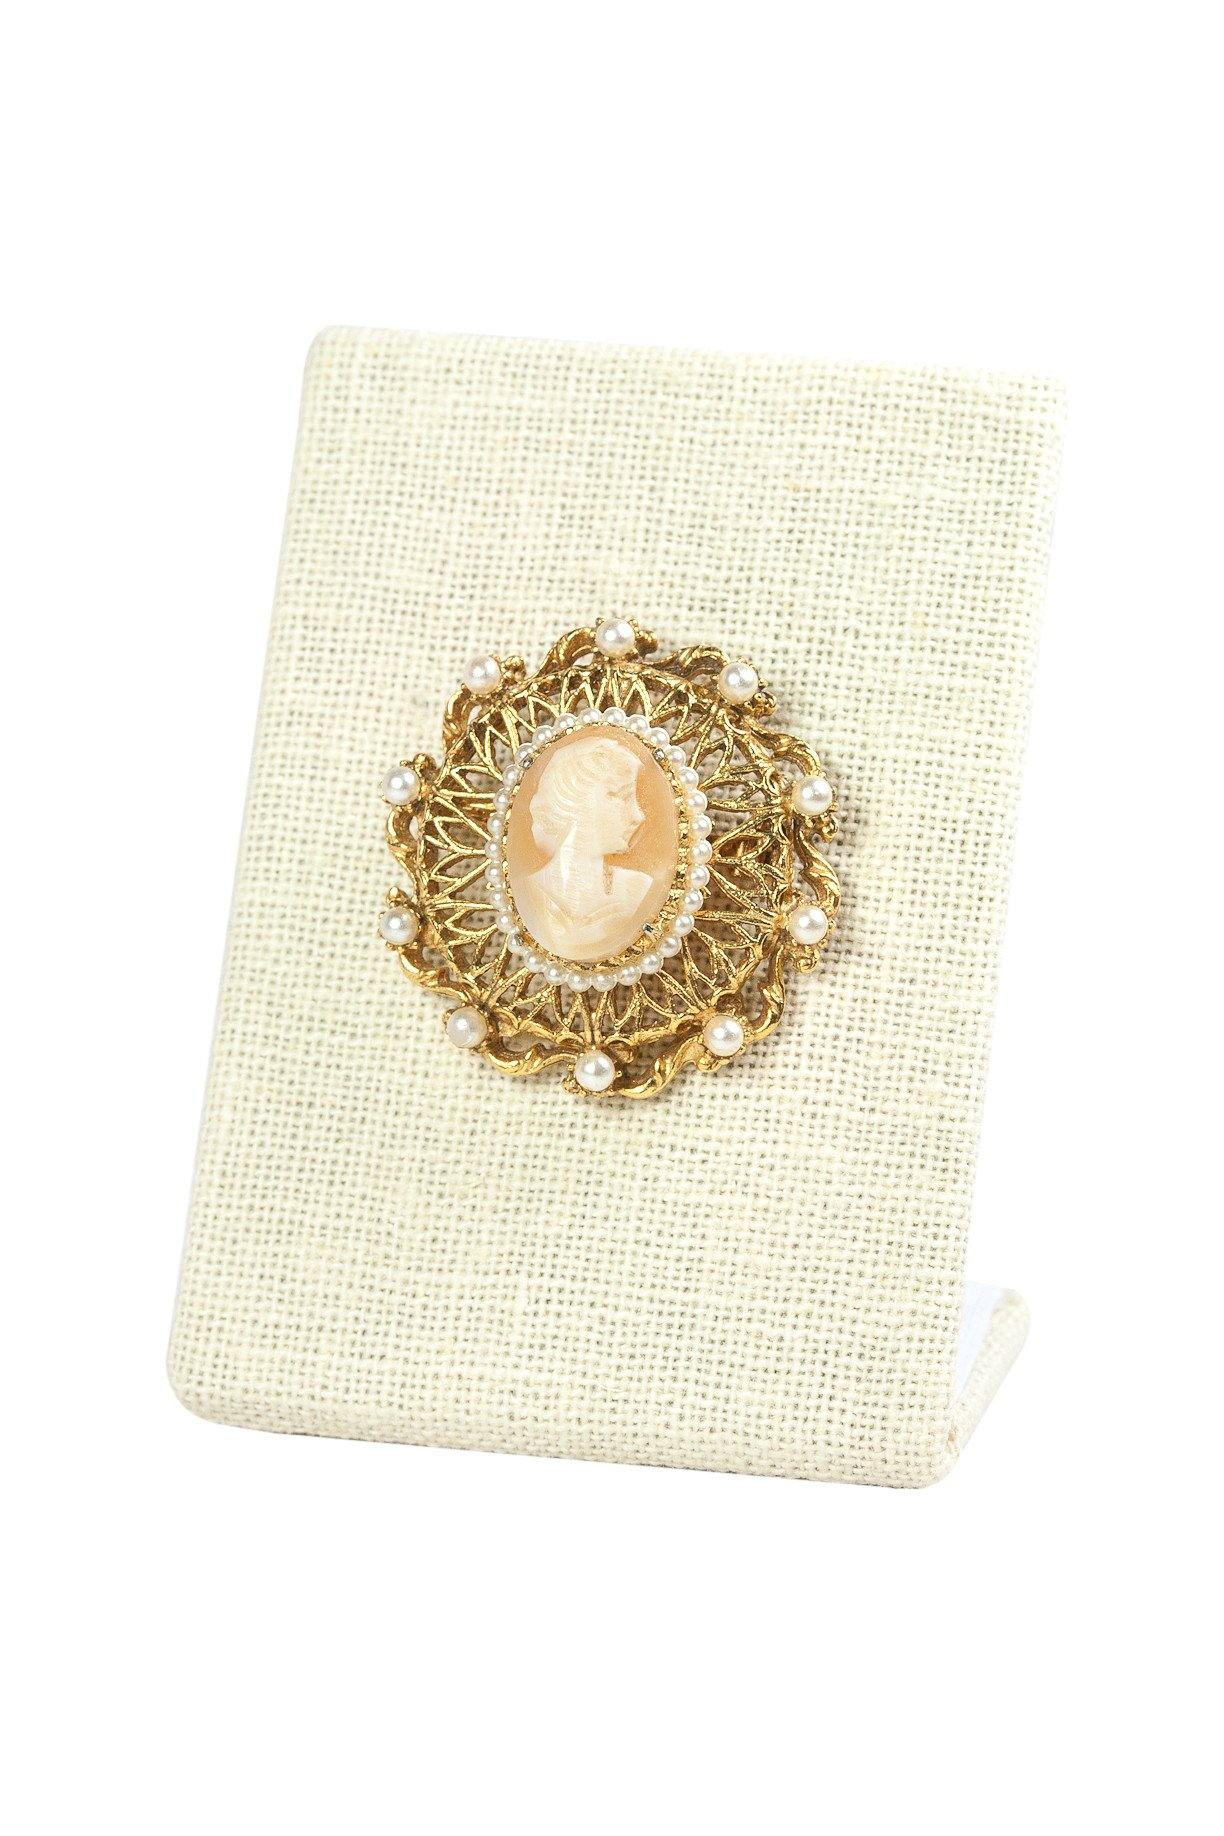 50's__Florenza__Cameo Pearl Brooch